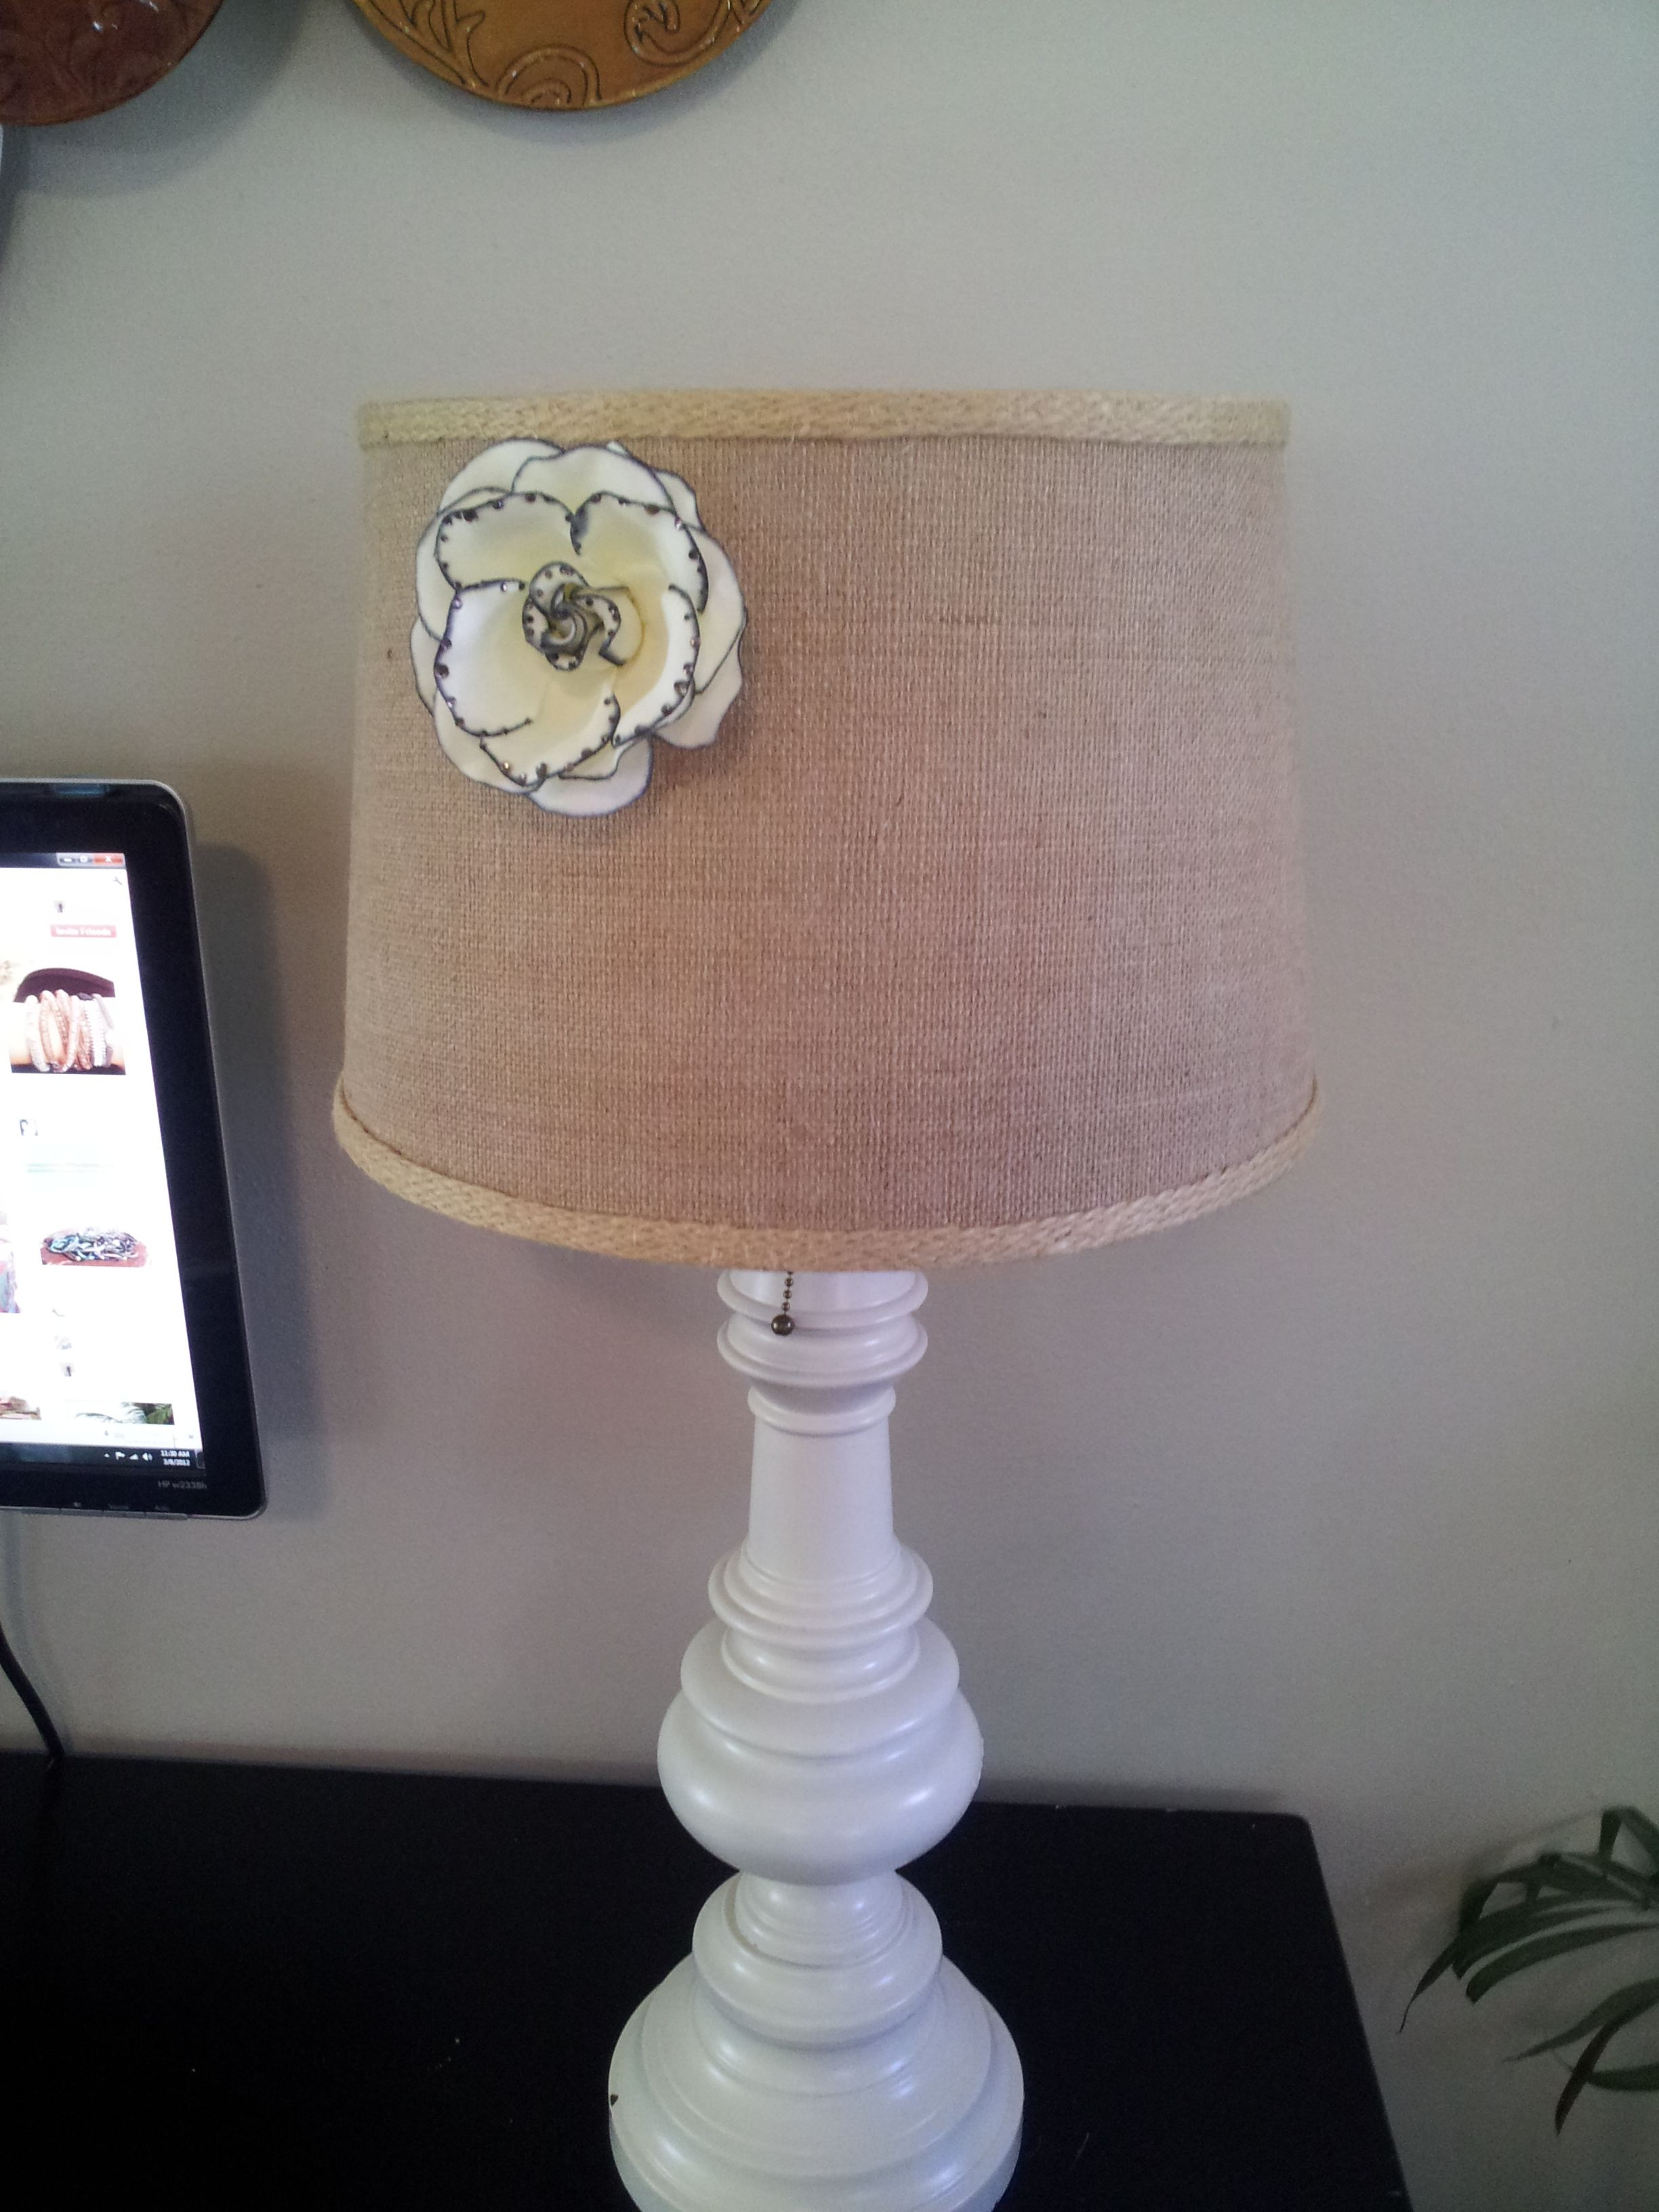 Hobby Lobby Lamp Shades Took A Cute Flower Barrette I Found At Hobby Lobby And Hot Glued It